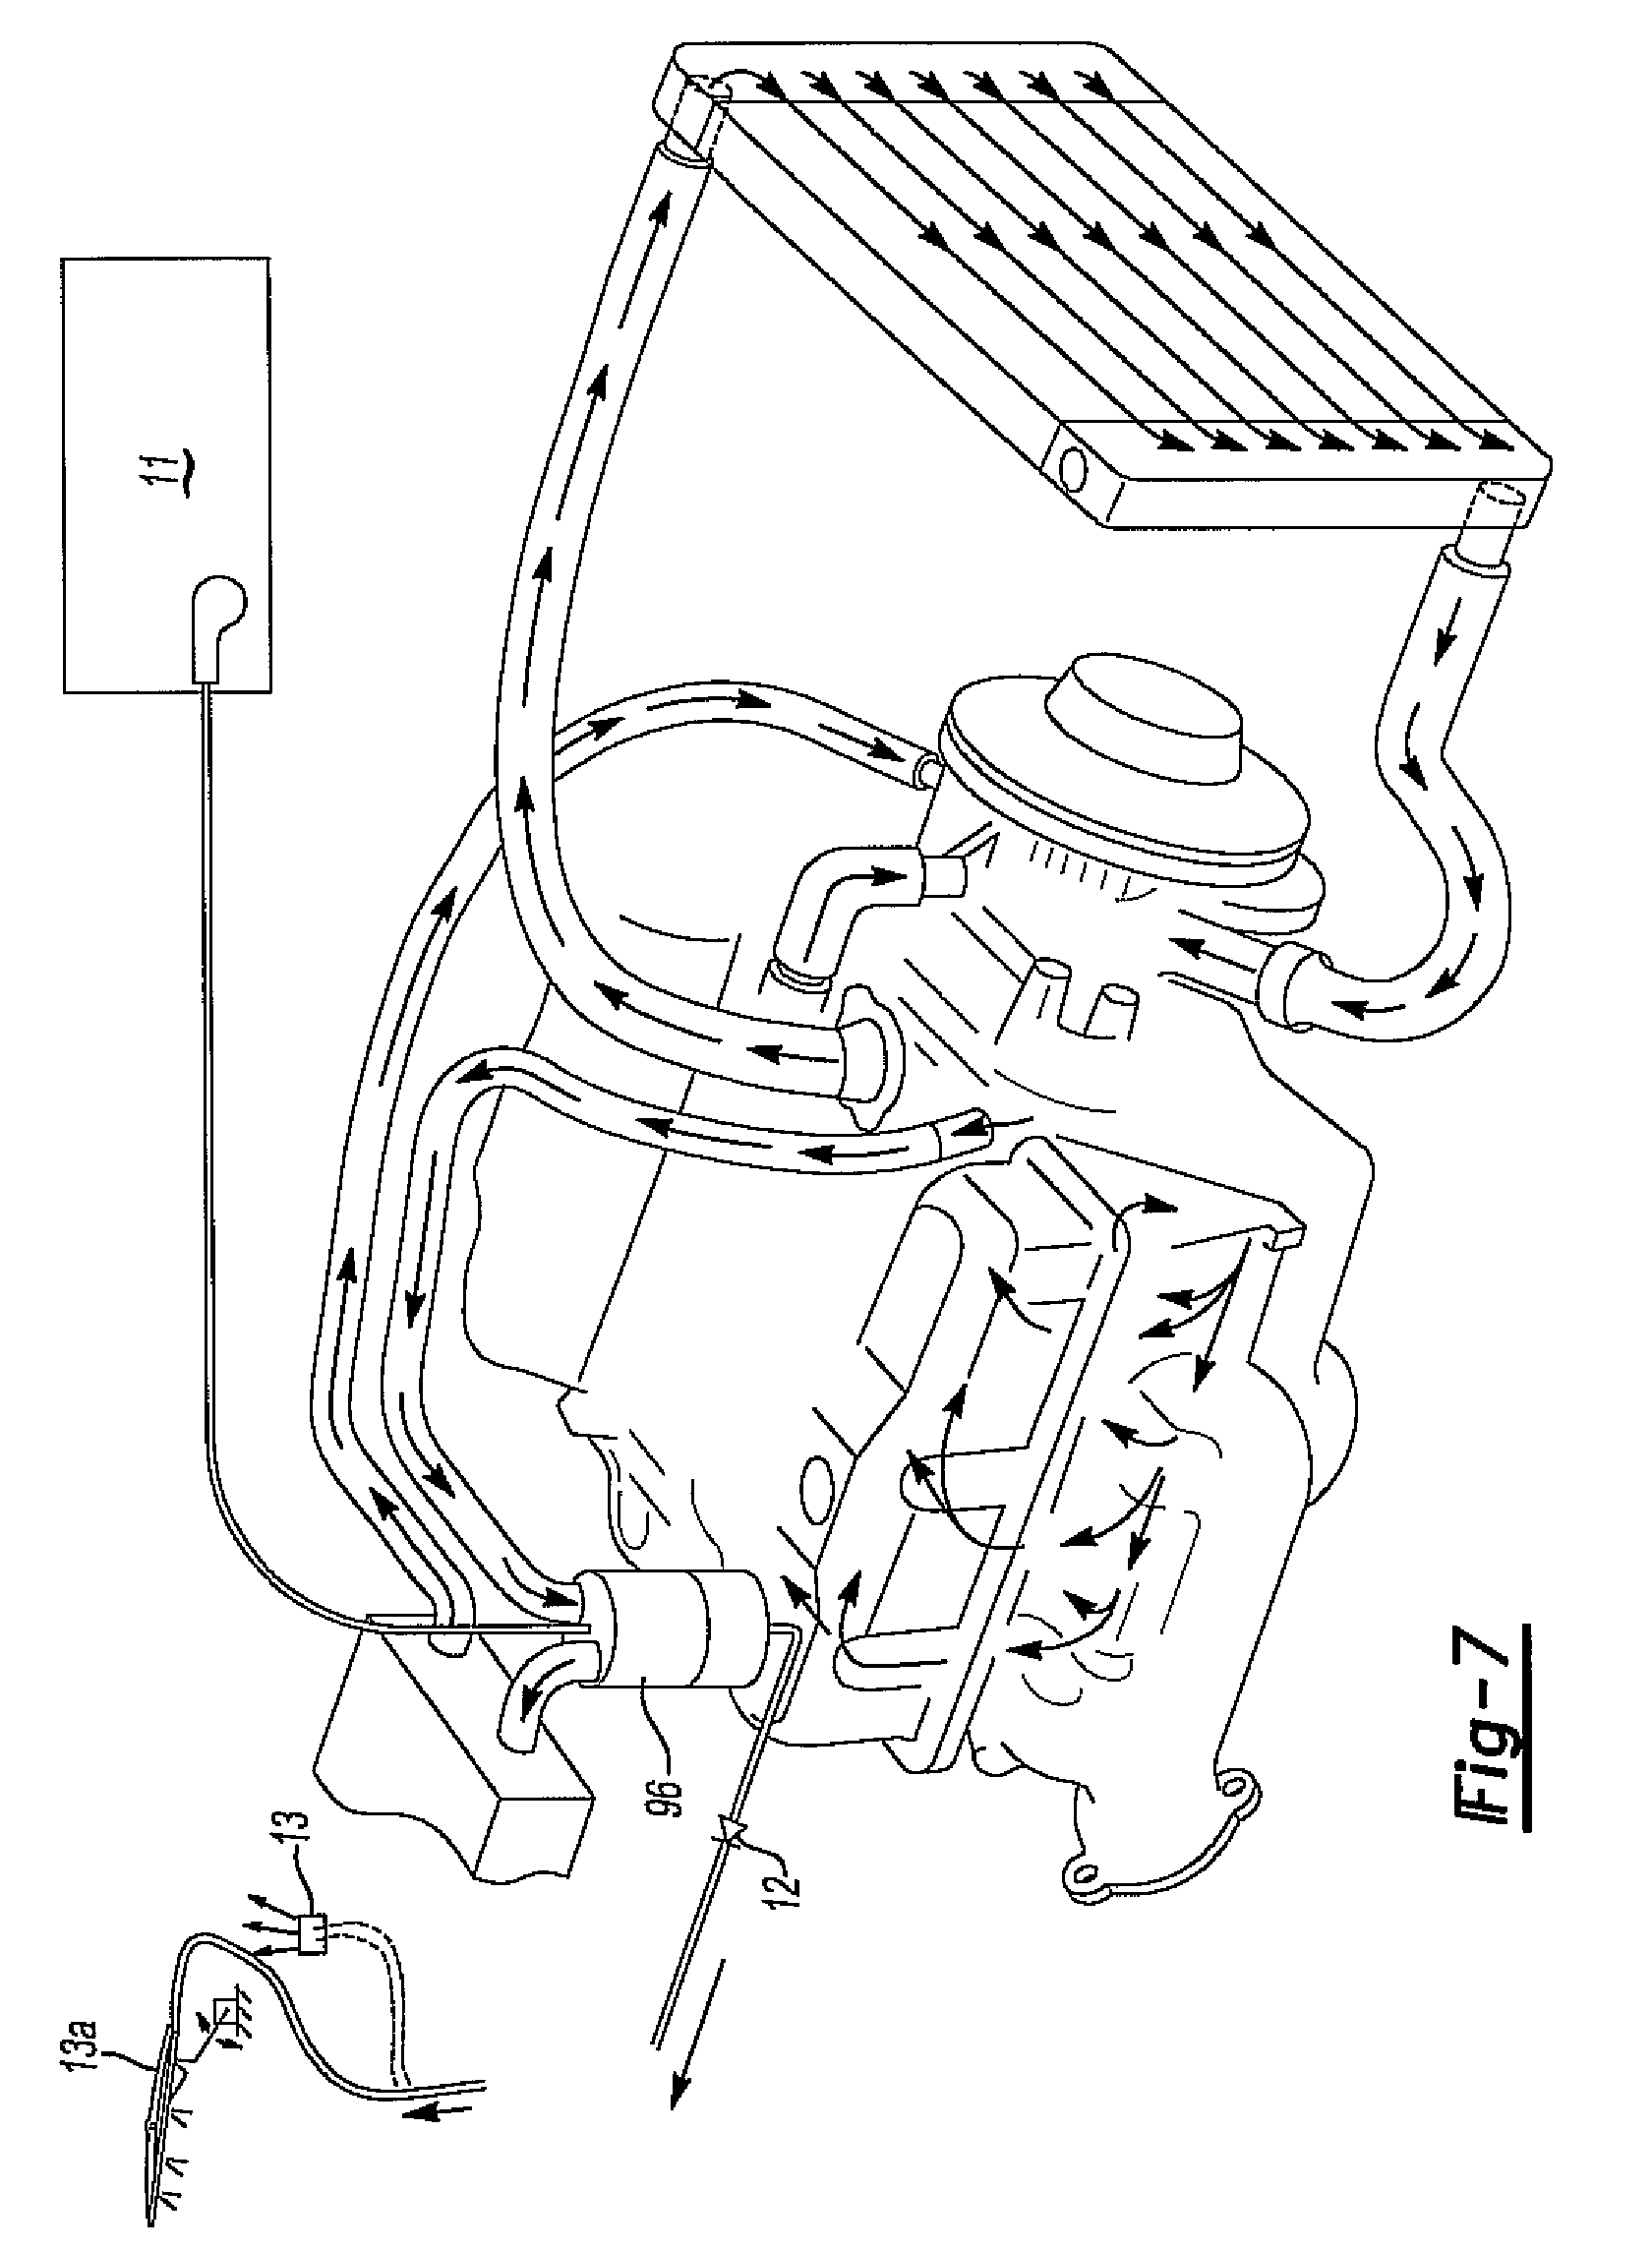 1954 Ford Ignition Wiring Diagram 1953 F100 Get Free Image